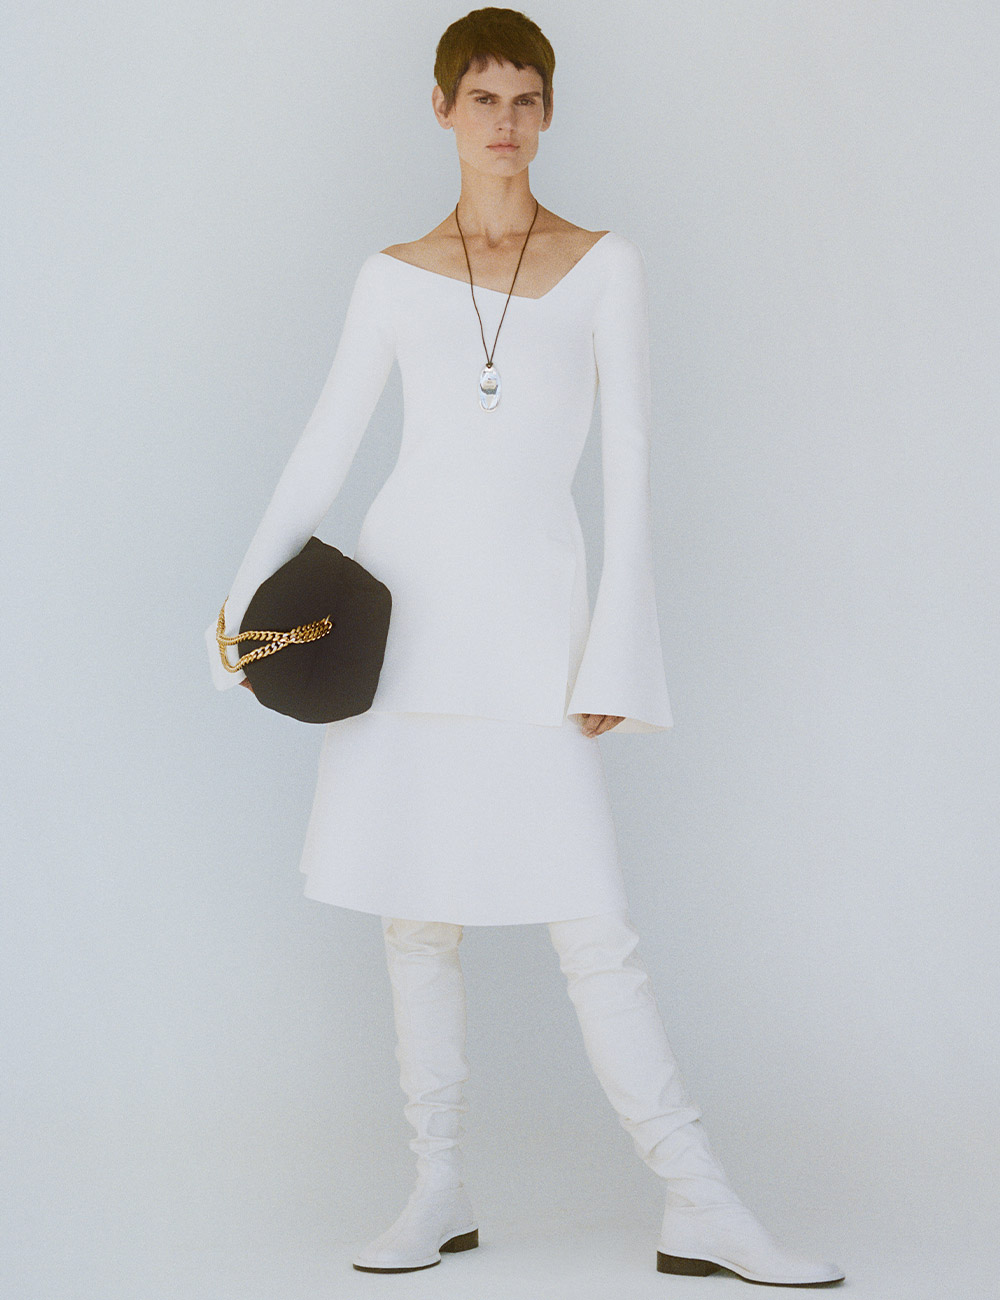 SS21 Look 24: White Knit Top and SKirt